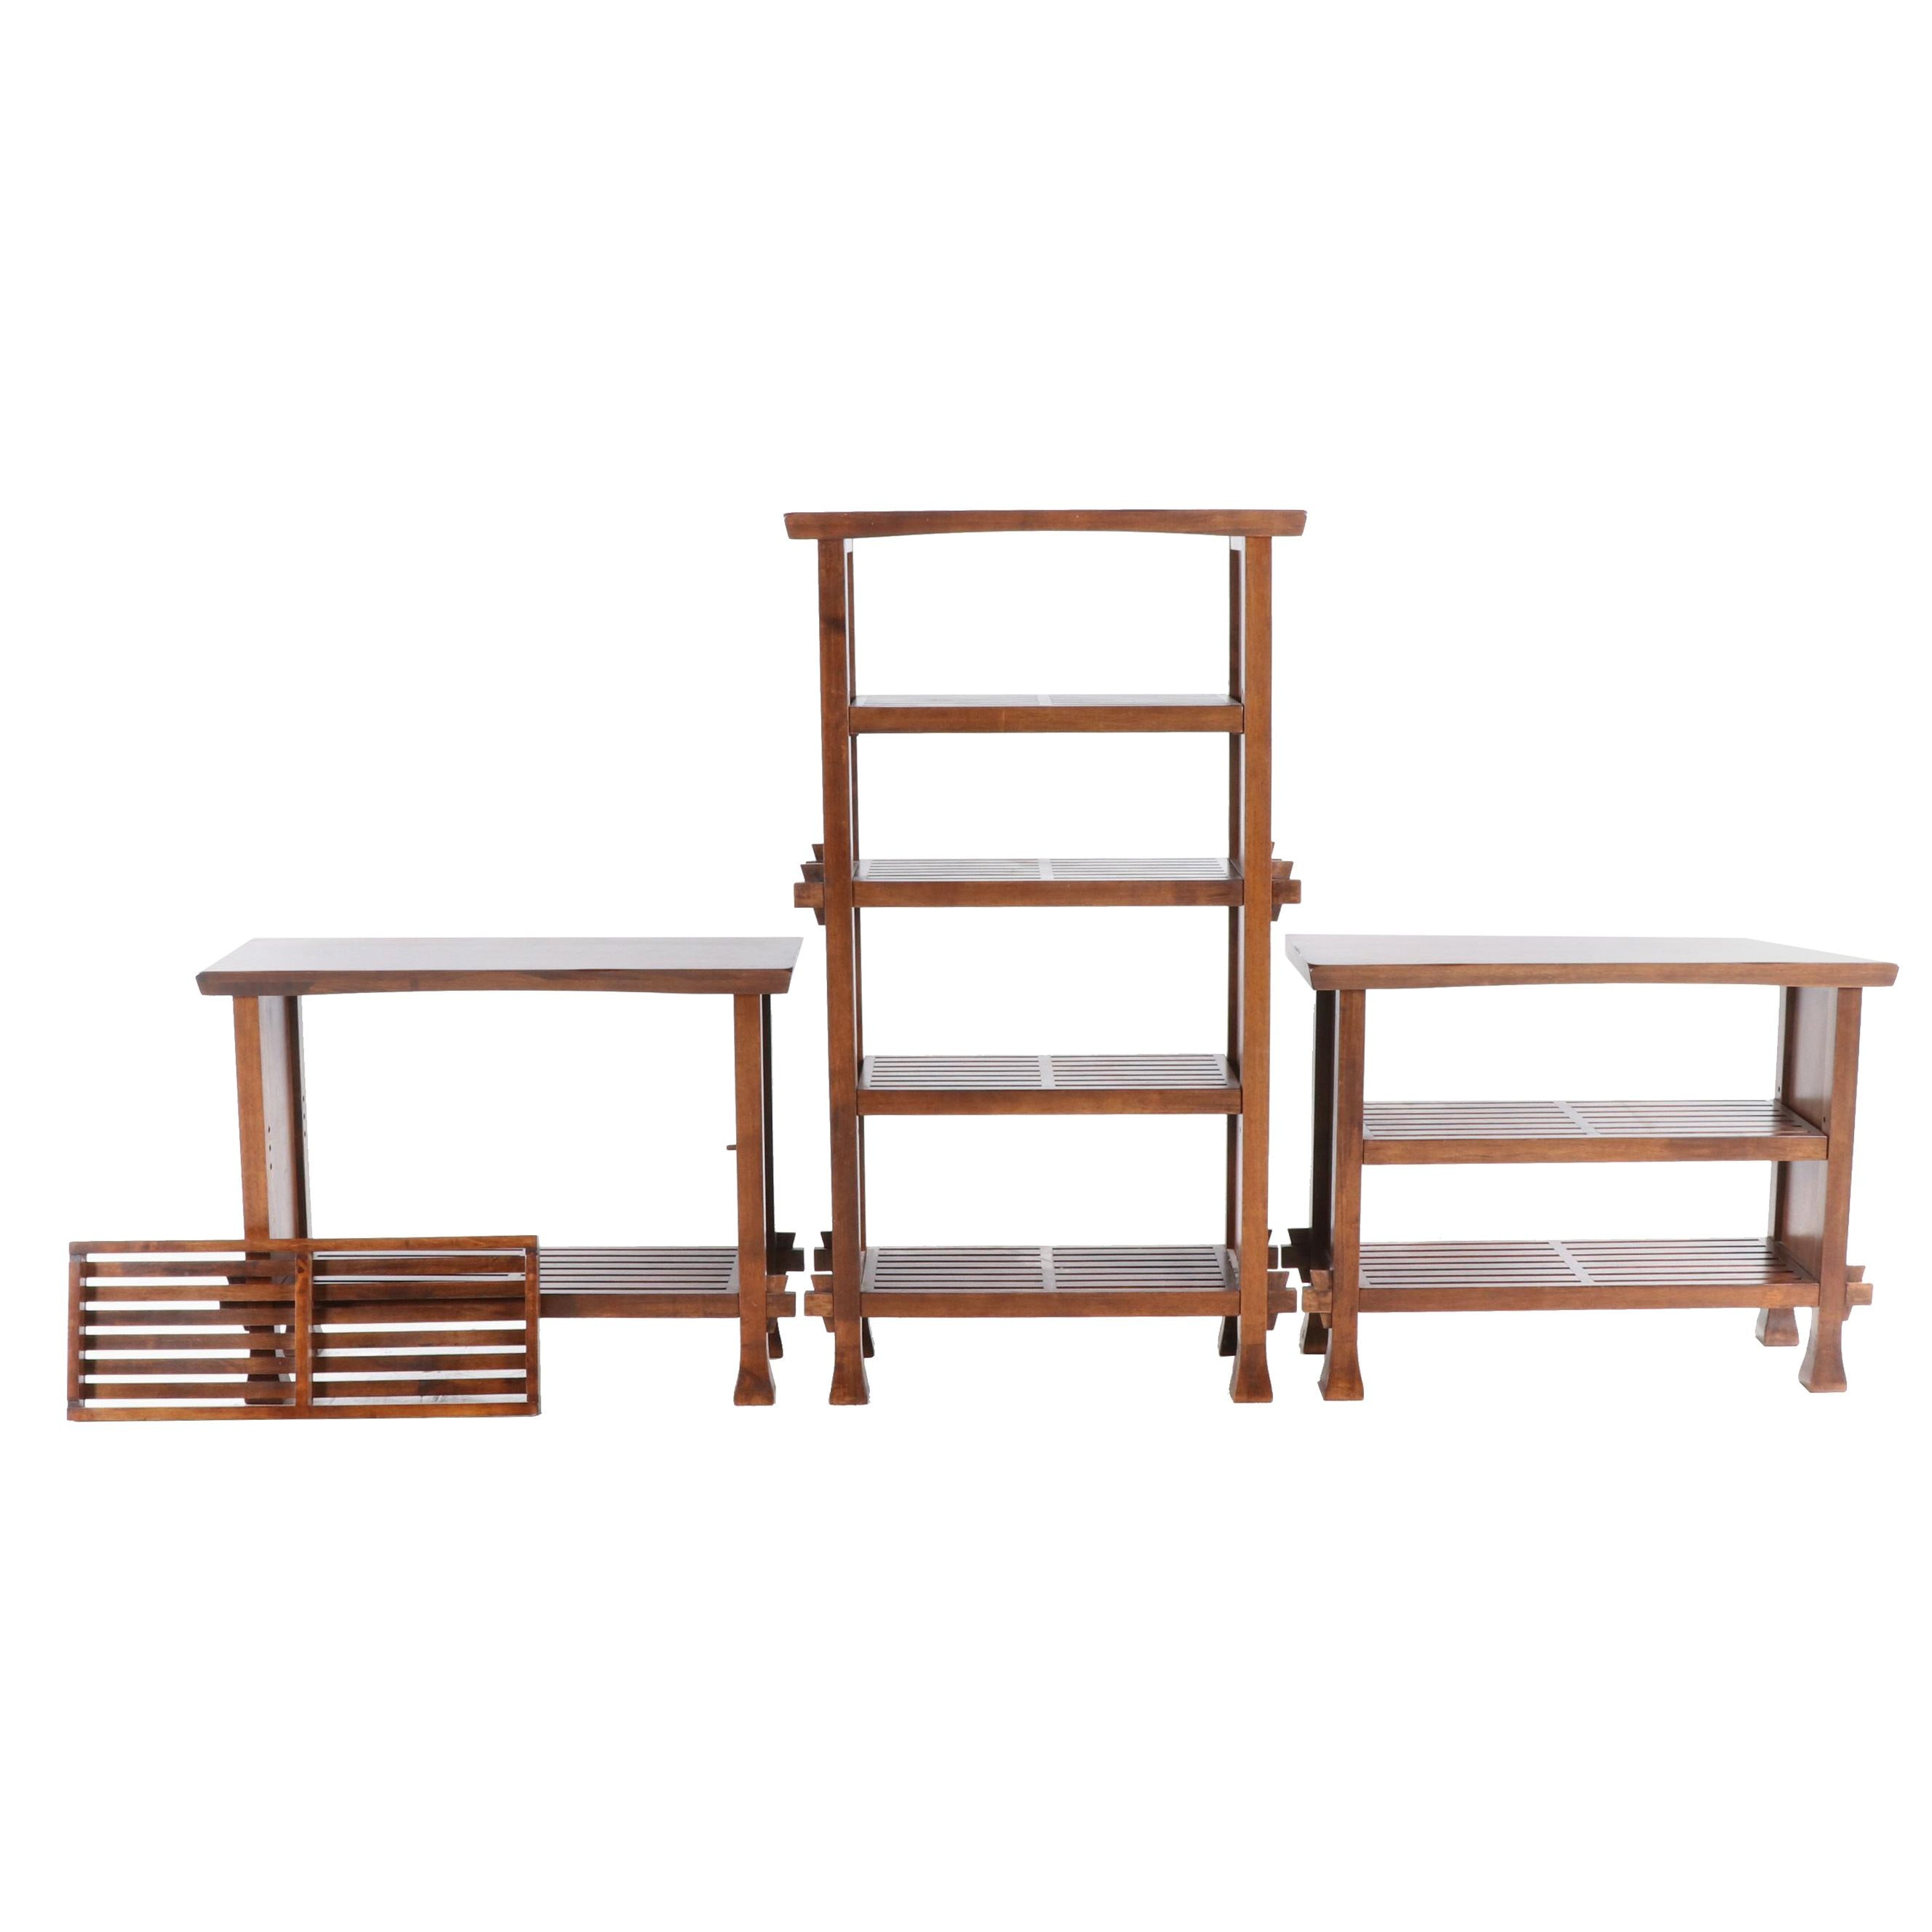 Contemporary Walnut-Finish Console Tables and One Bookcase, Late 20th Century